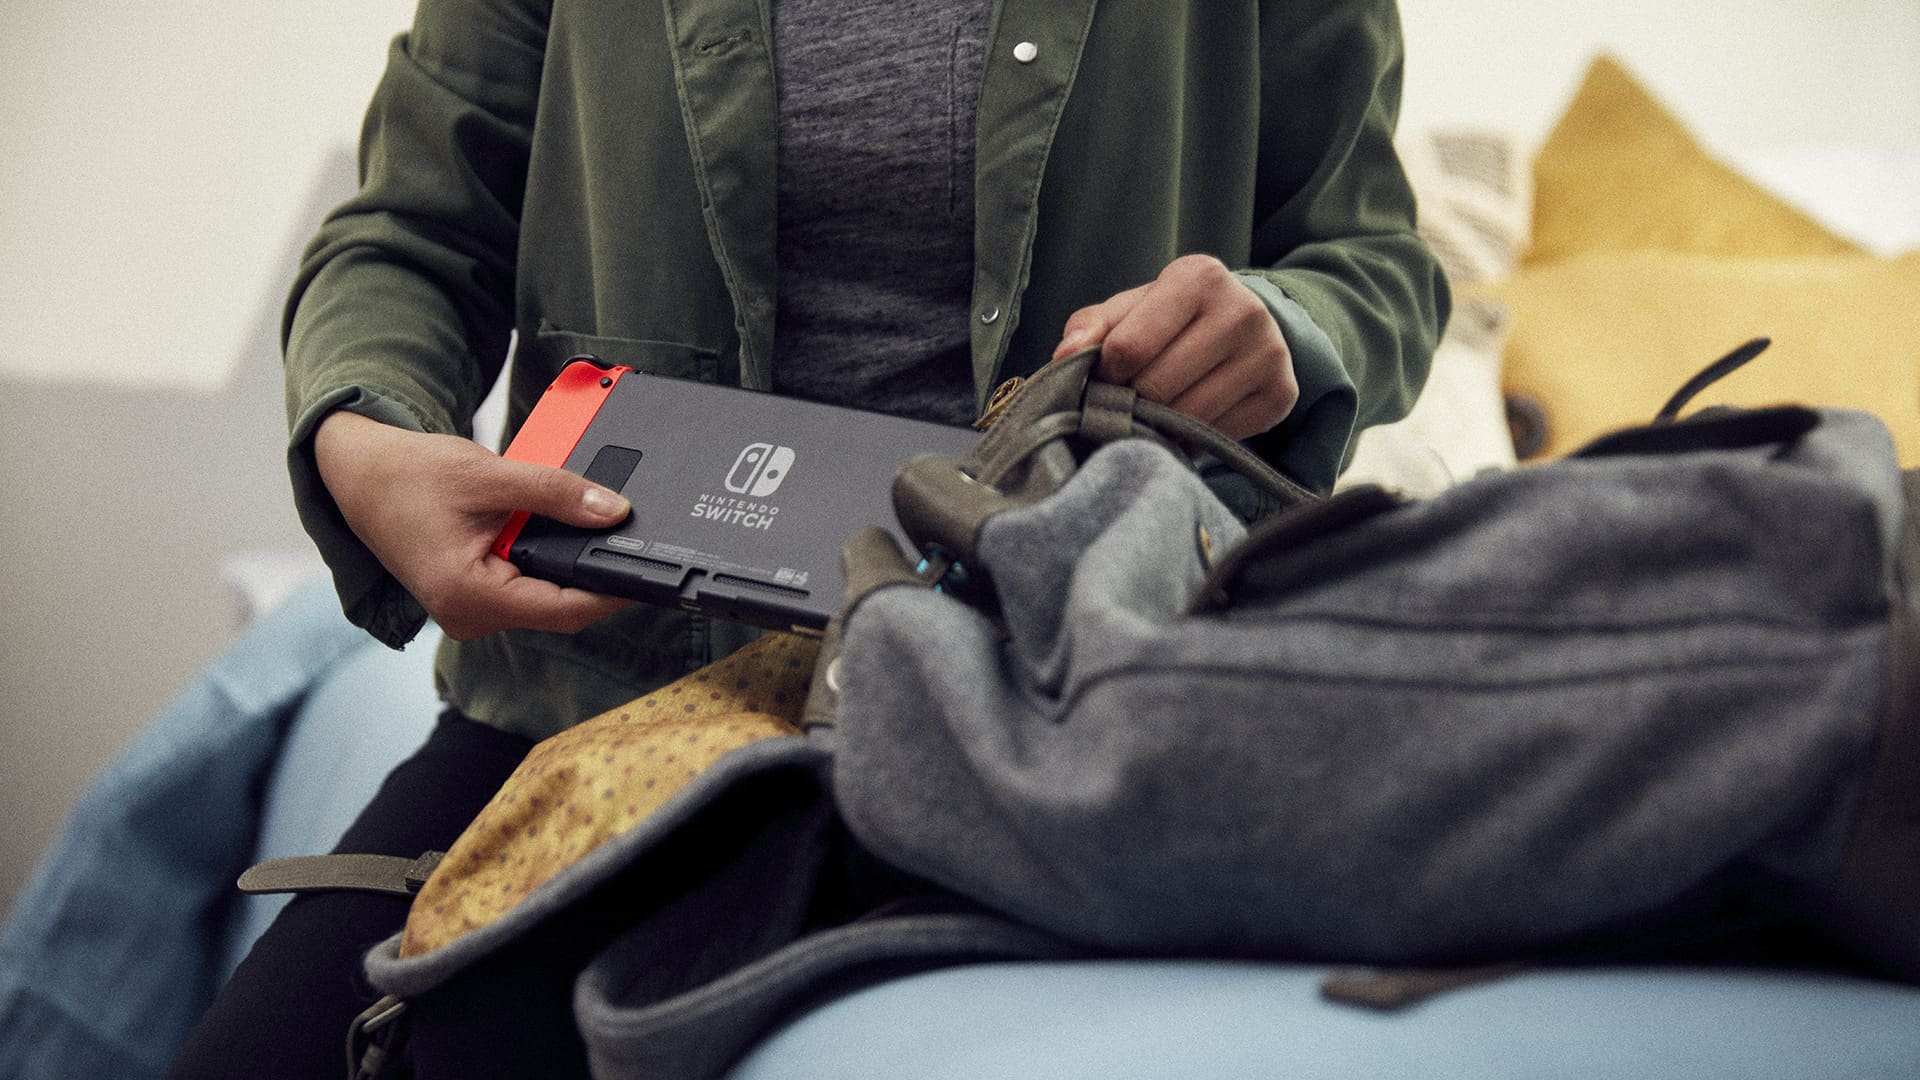 Nintendo Switch Going Into Bag